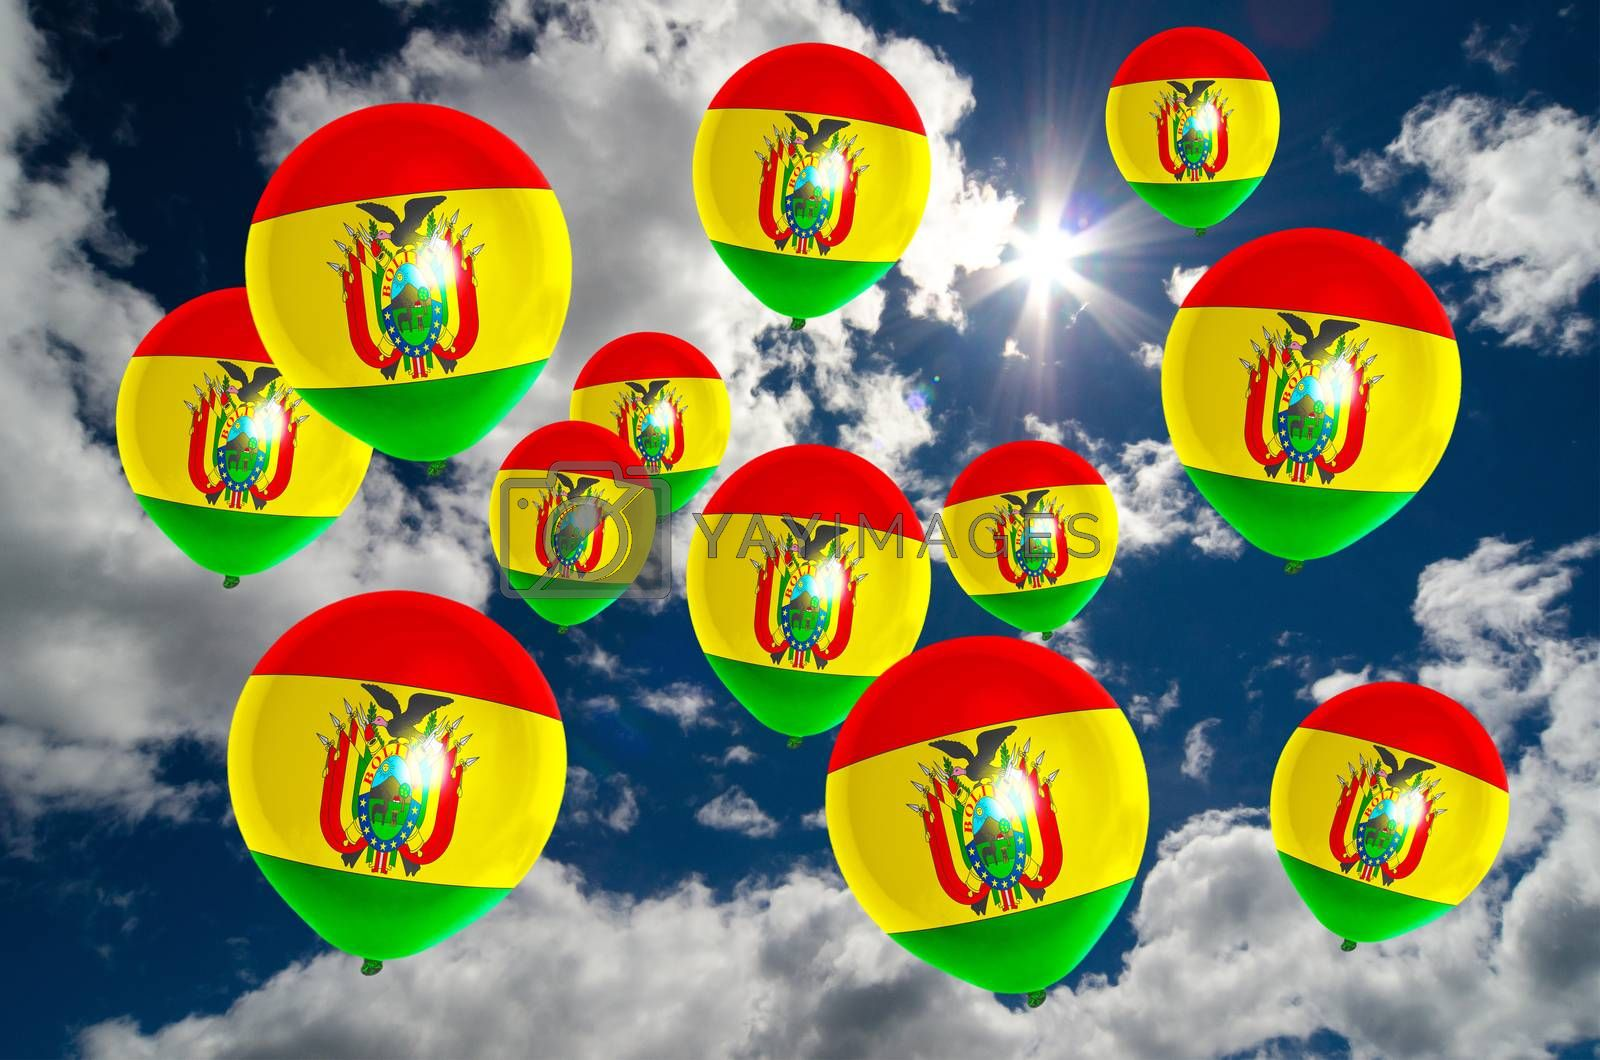 many ballons in colors of bolivia flag flying on sky